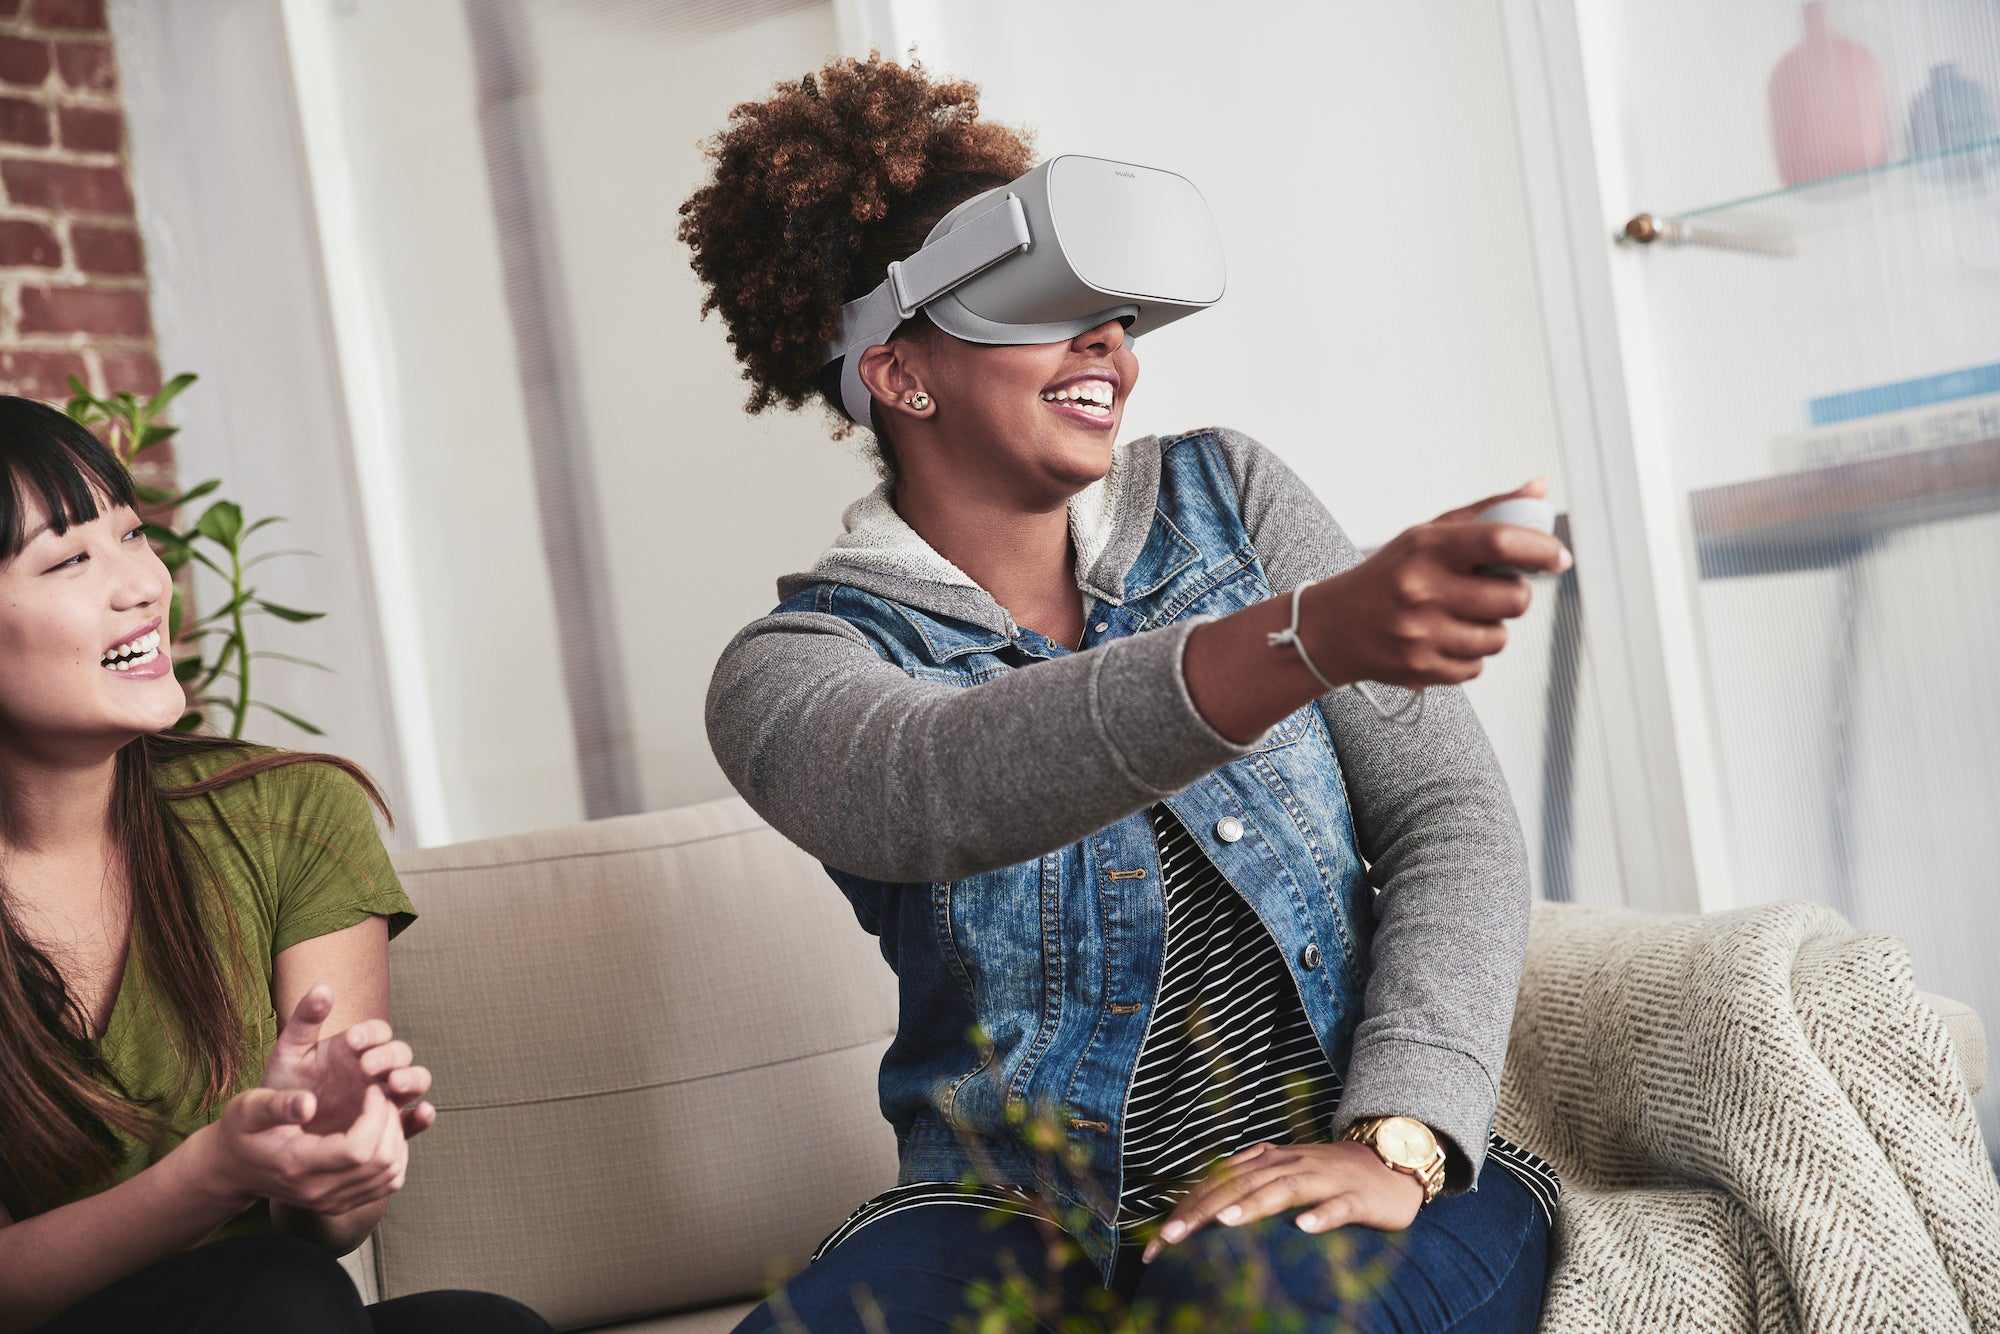 Bad News for Facebook's Oculus | The Motley Fool